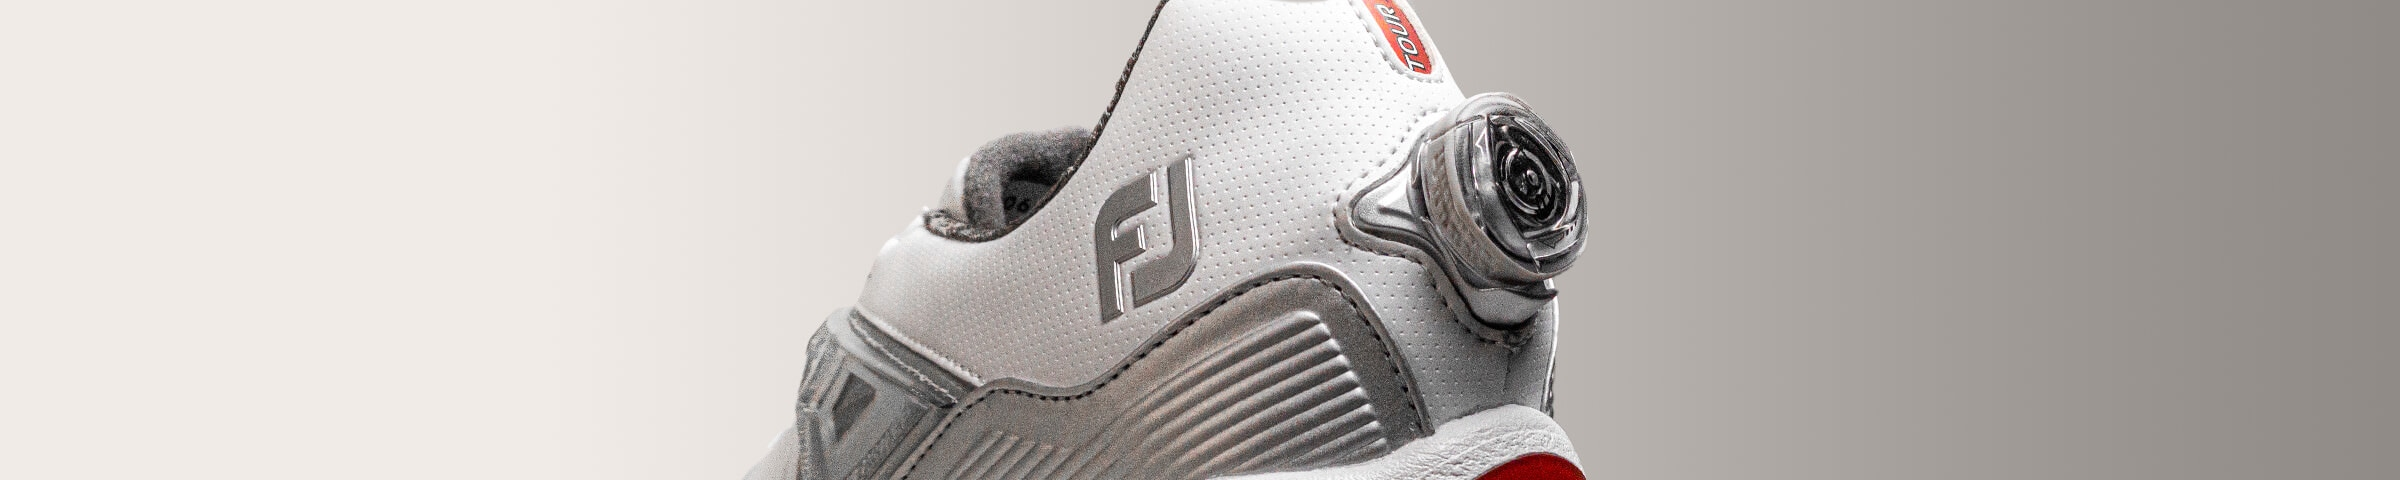 FootJoy BOA® Fit System Golf Shoes